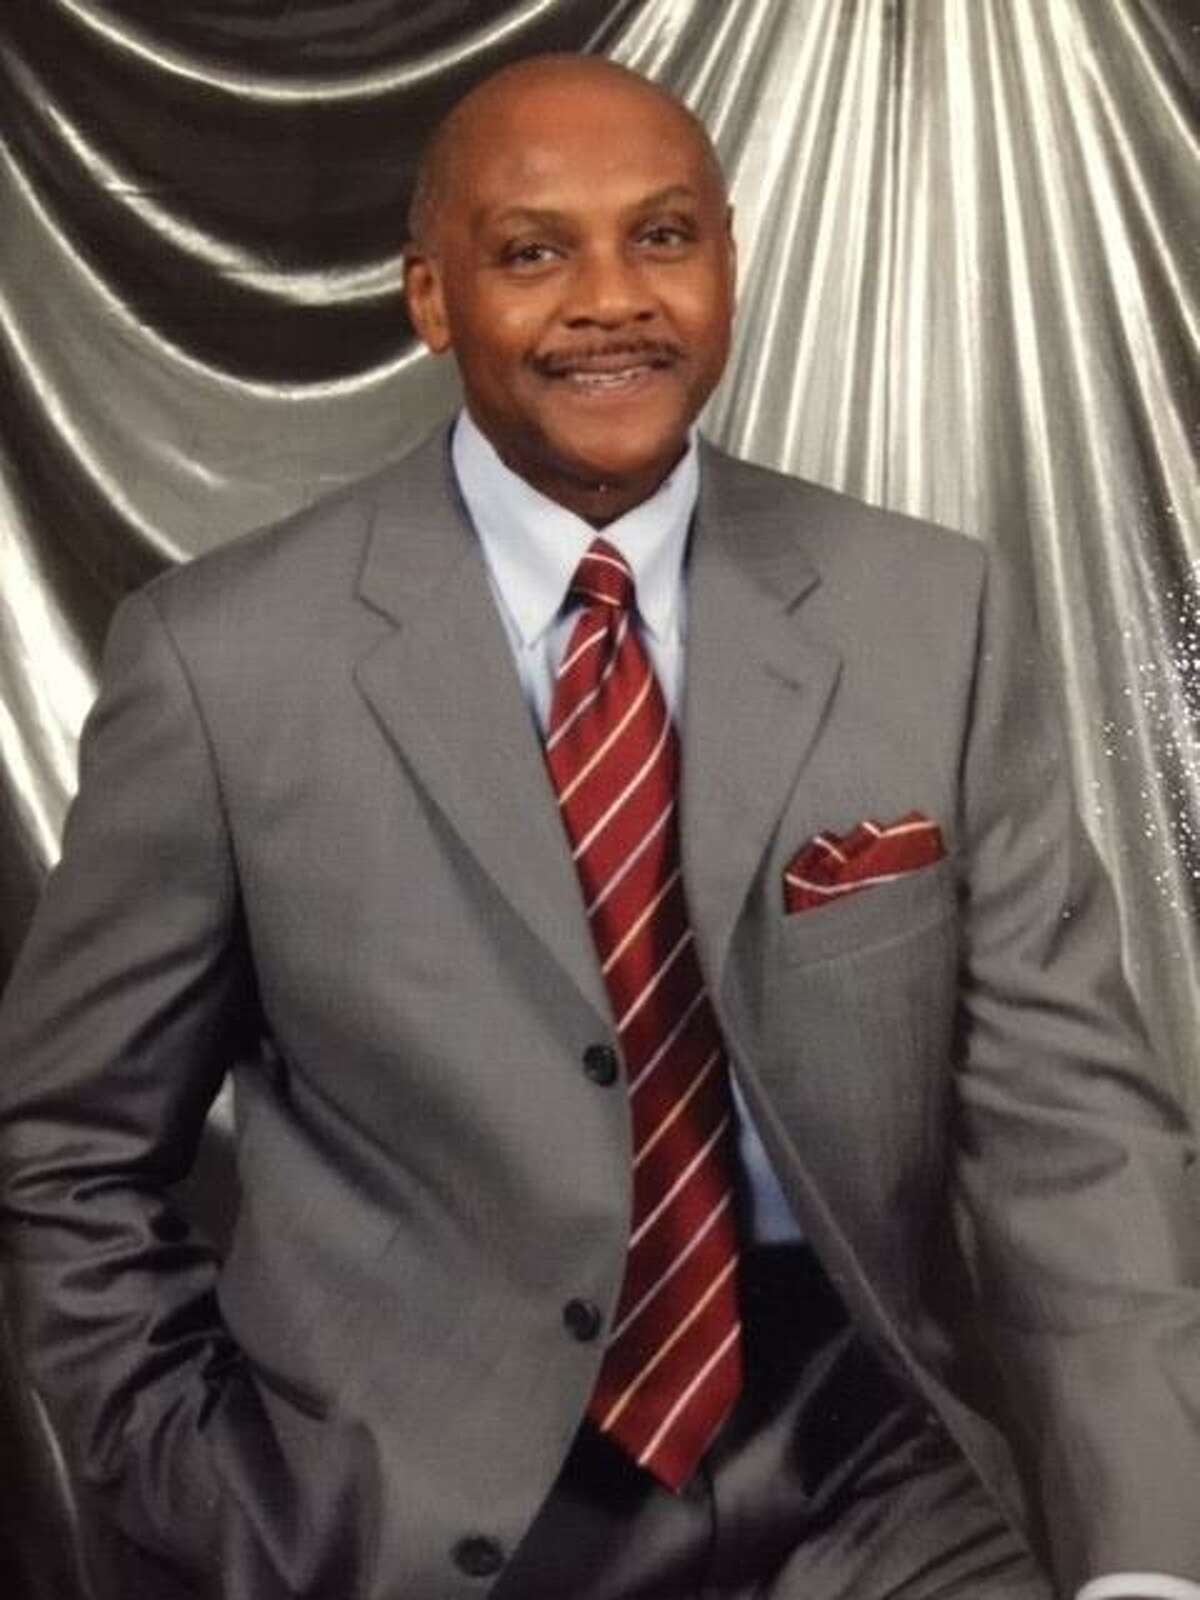 Jimmie Dotson, a long-time police official and former HISD police chief, finished second in the unofficial results for the Position 2 seat on The Woodlands Township Board of Directors. He was the first Black candidate in the modern history of the township board. He said after his loss that he was thankful for the thousands of votes he received.